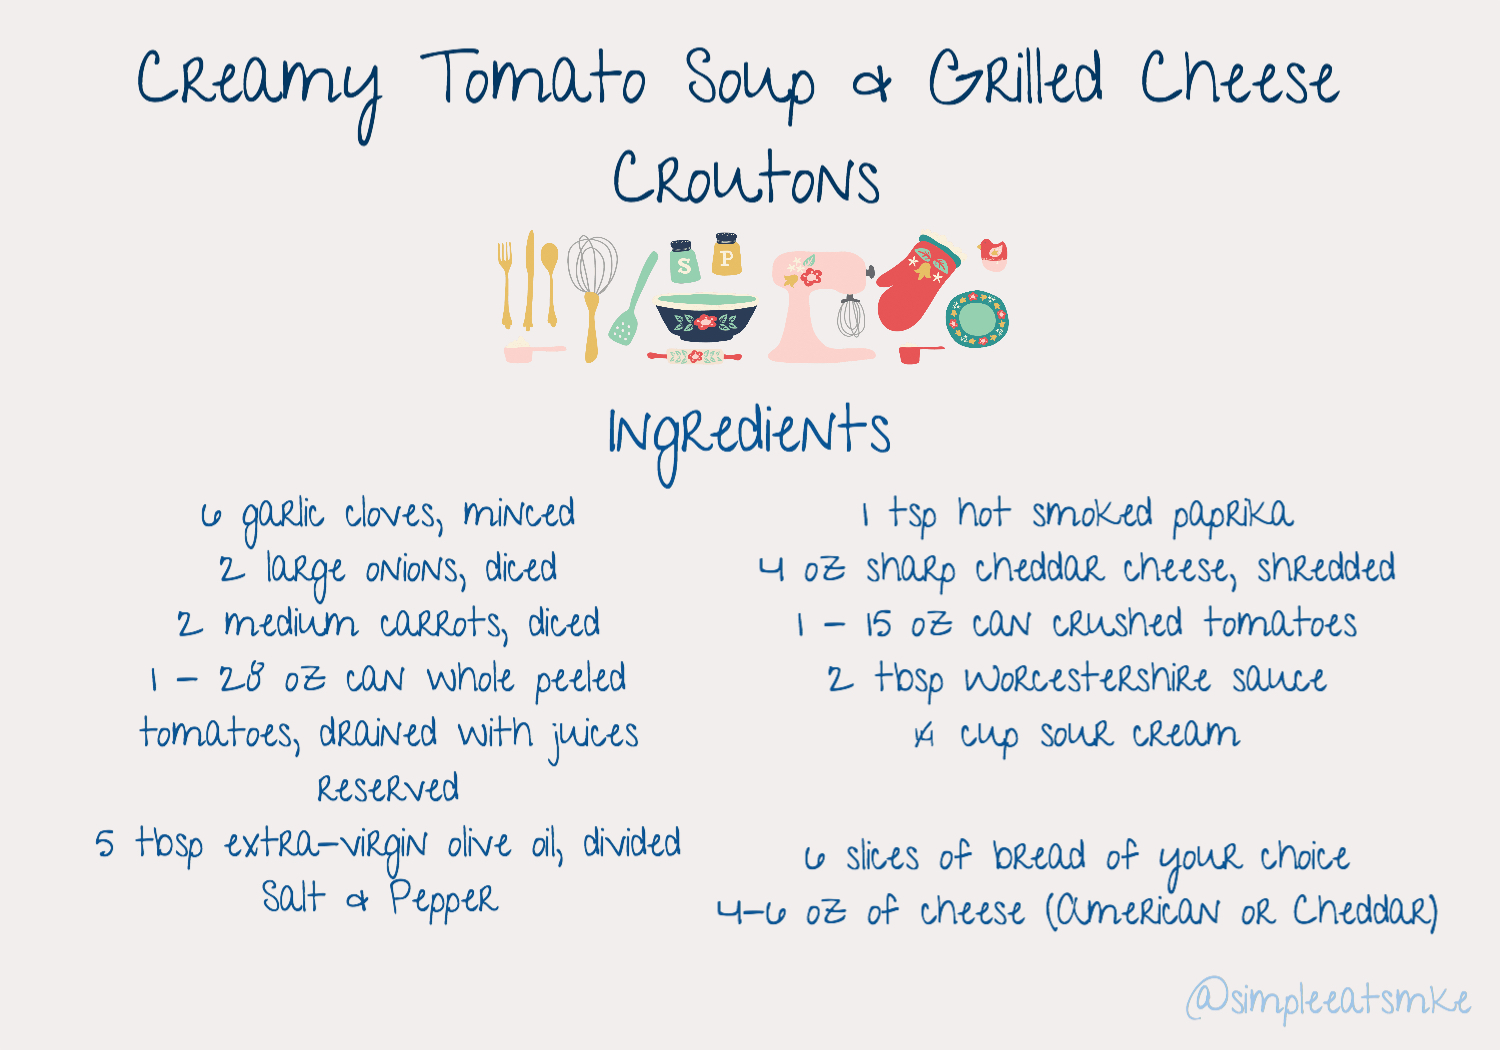 Creamy Tomato Soup Ingredients.jpg